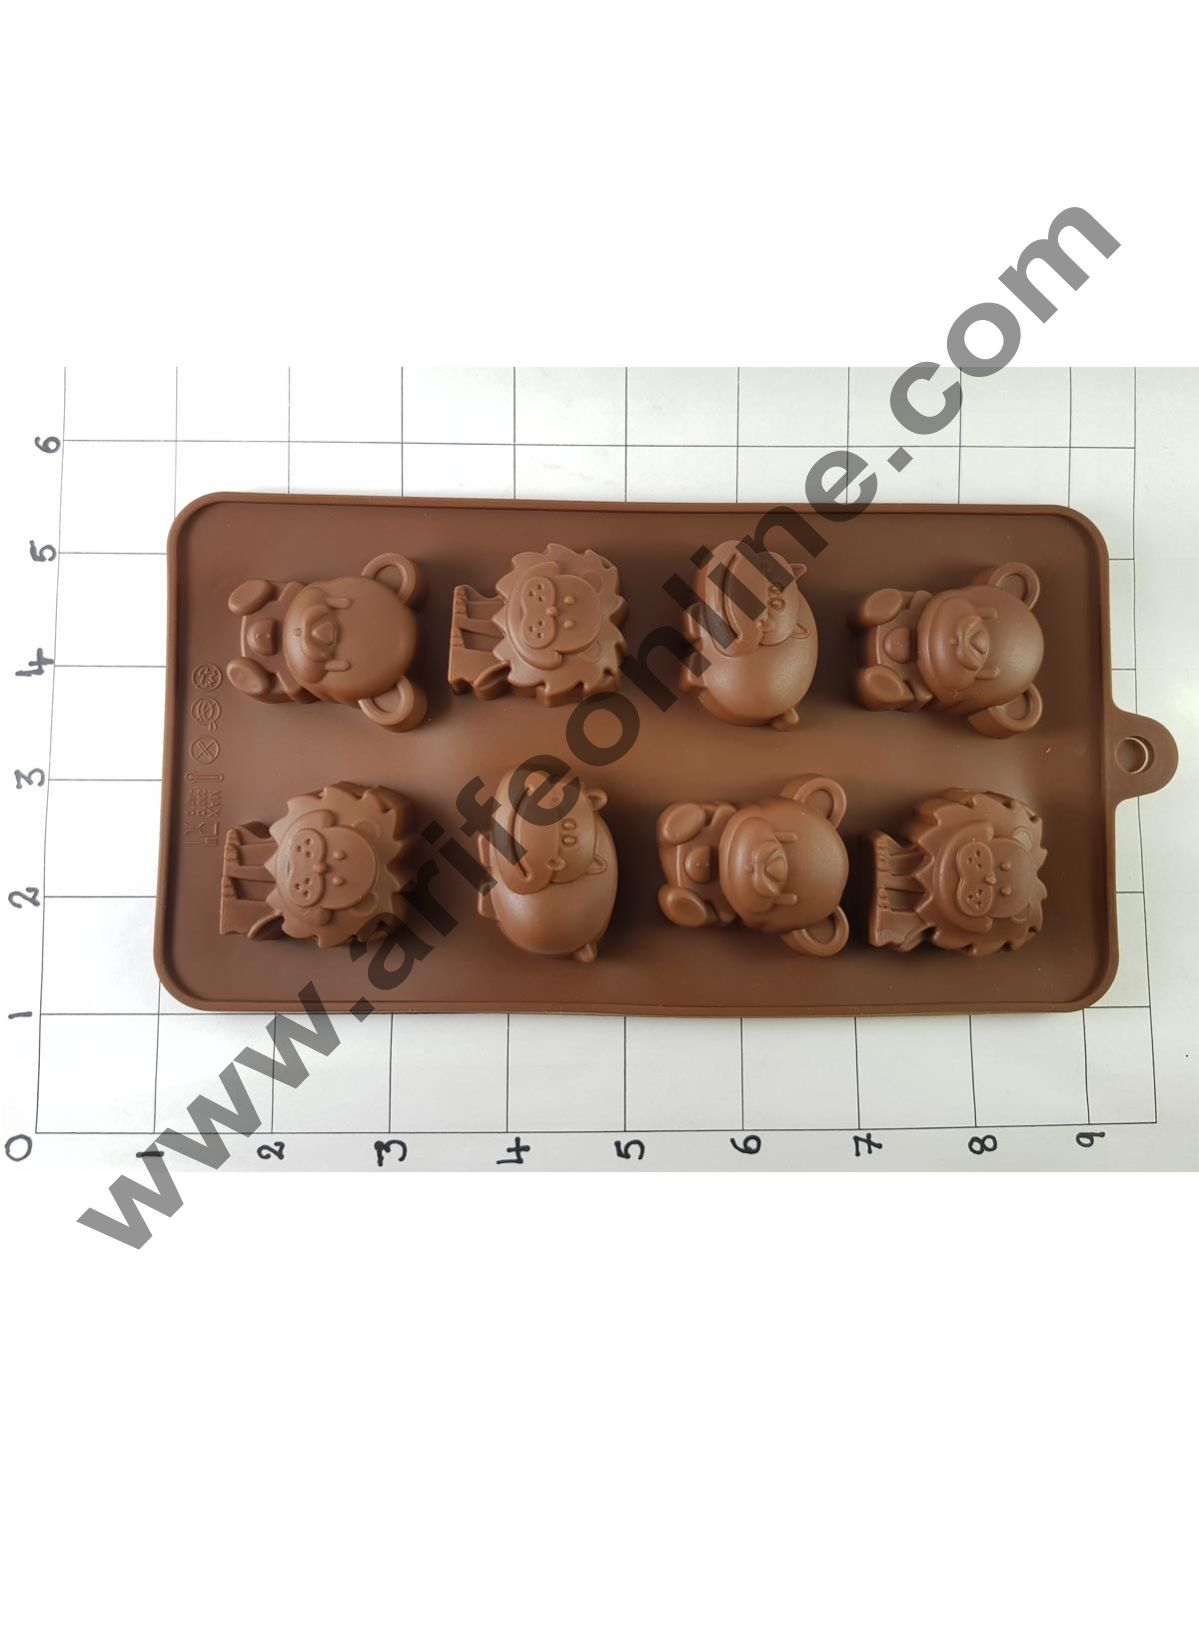 Cake Decor Silicon 8 Cavity Lion Shape Design Brown Chocolate Mould, Ice Mould, Chocolate Decorating Mould